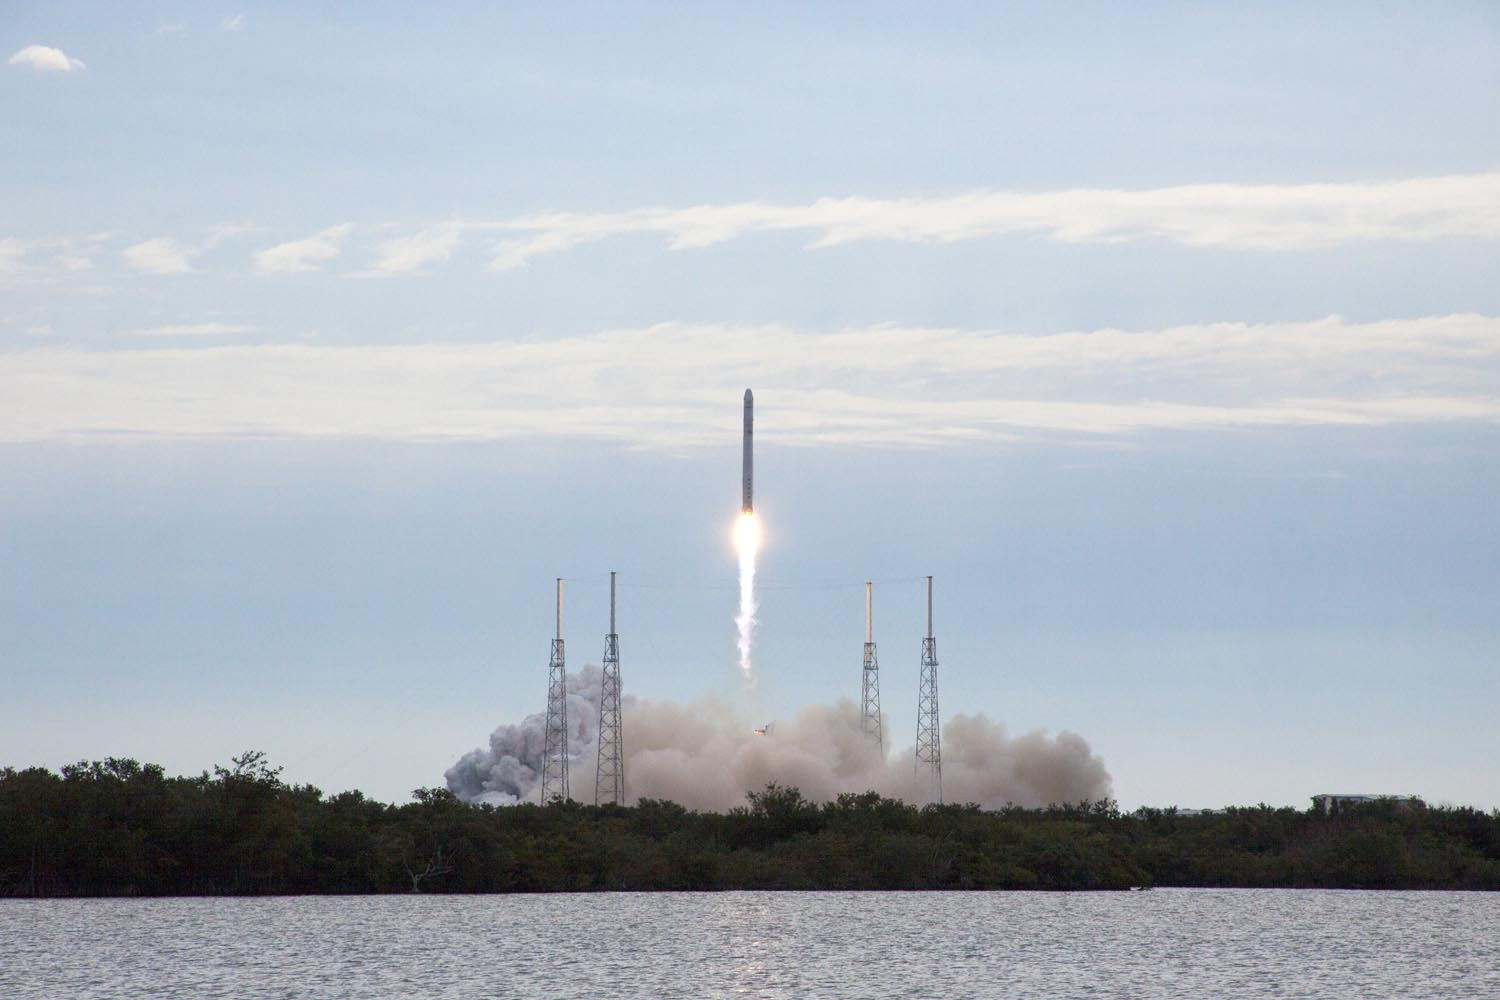 Coming Soon: SpaceX Launches from Texas Spaceport?